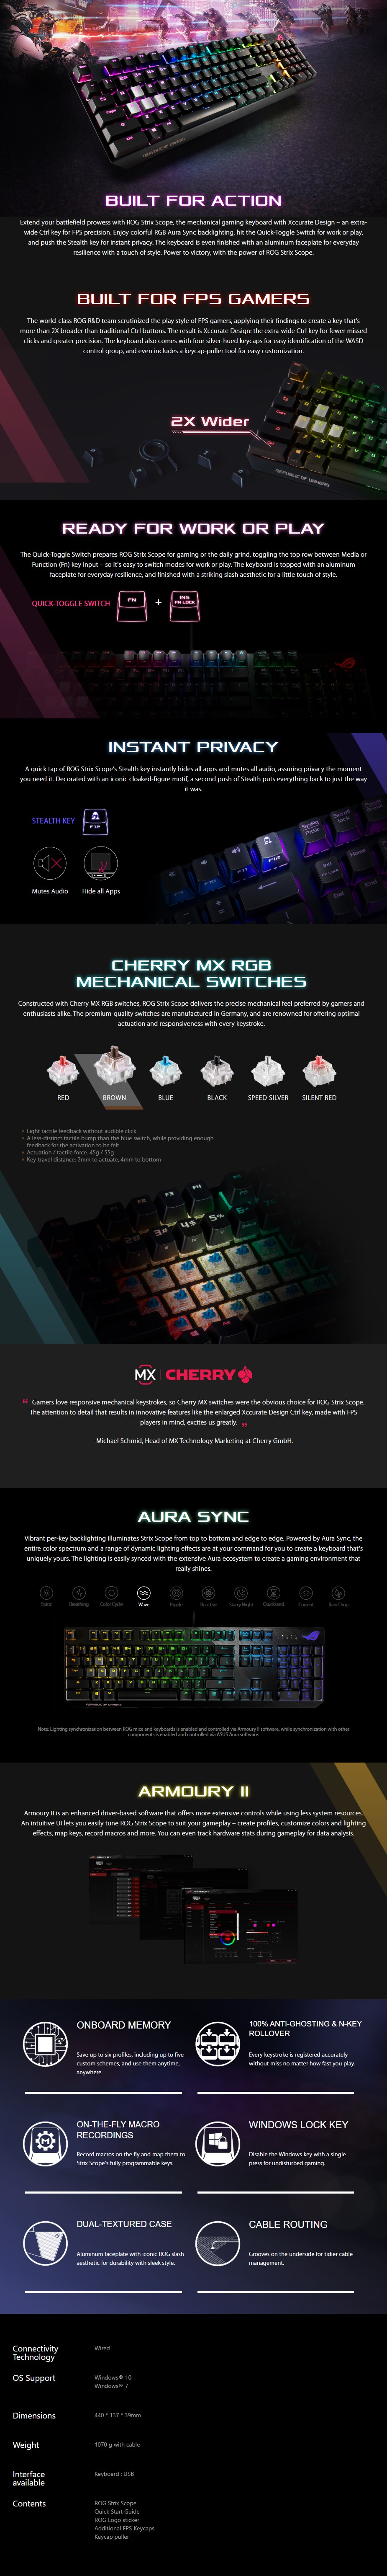 ASUS ROG Strix Scope RGB Mechanical Gaming Keyboard - Cherry MX Black - Overview 1